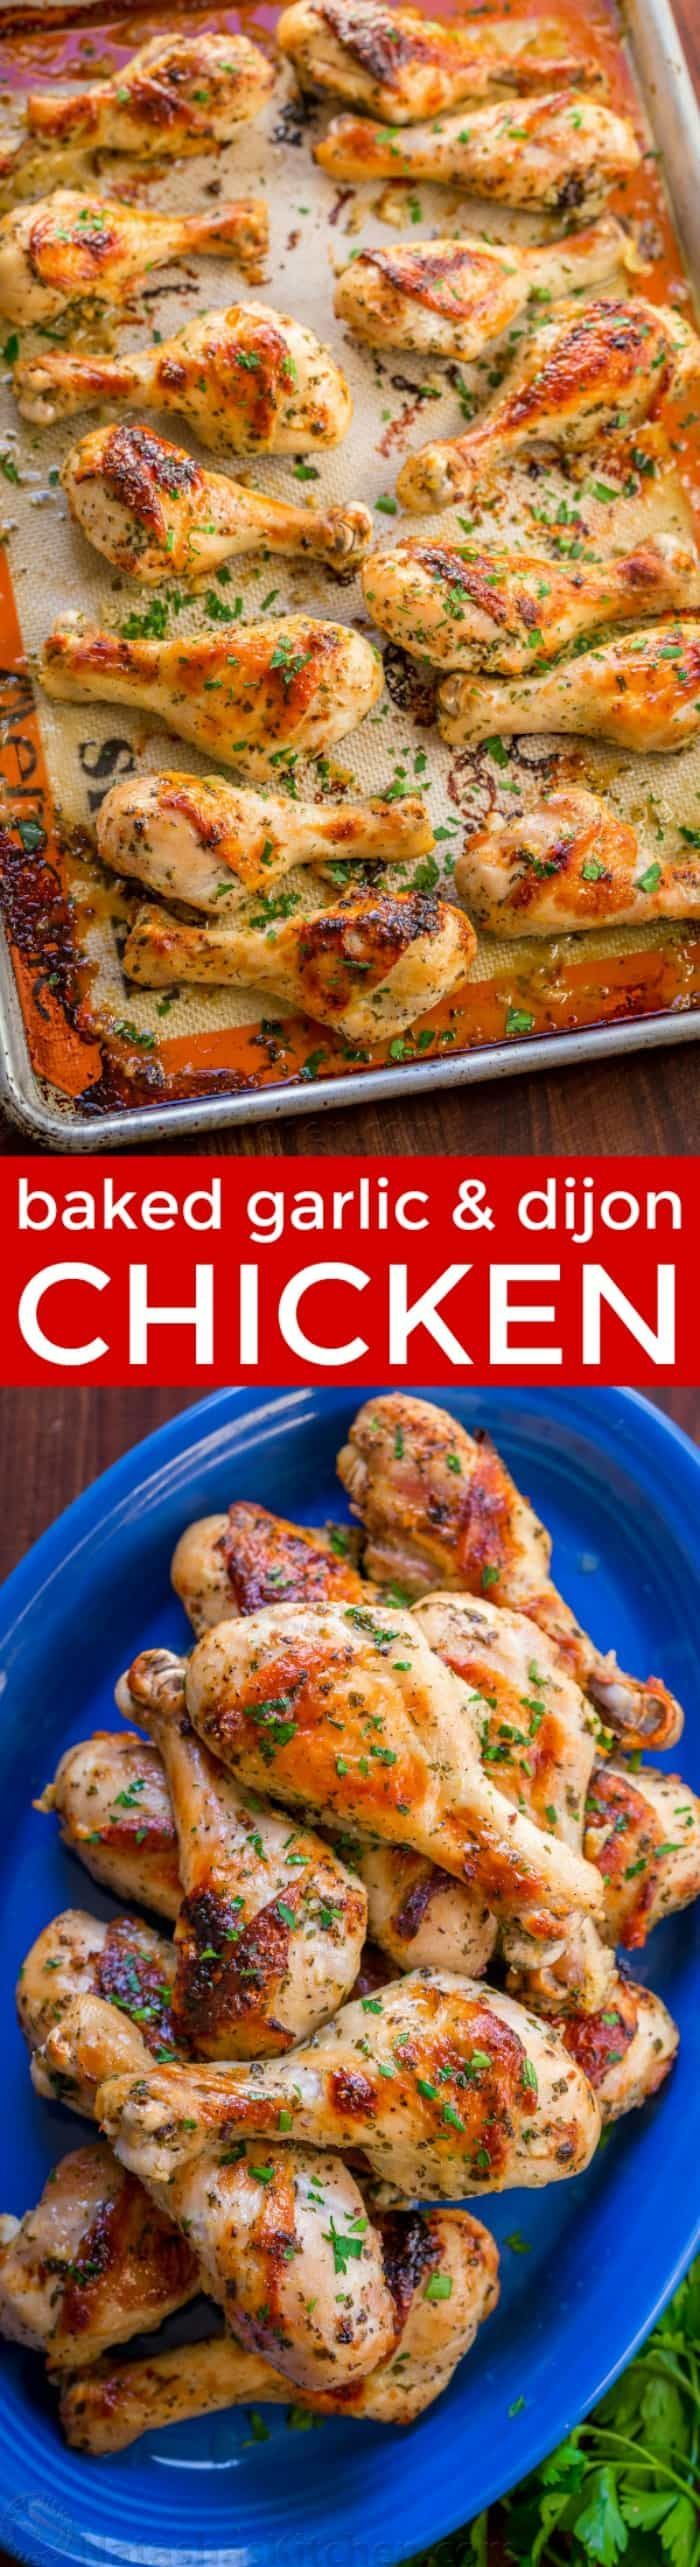 Baked Chicken Legs recipe with garlic, lemon and dijon. An easy and excellent chicken marinade with so much flavor. Learn the secret to great chicken legs!